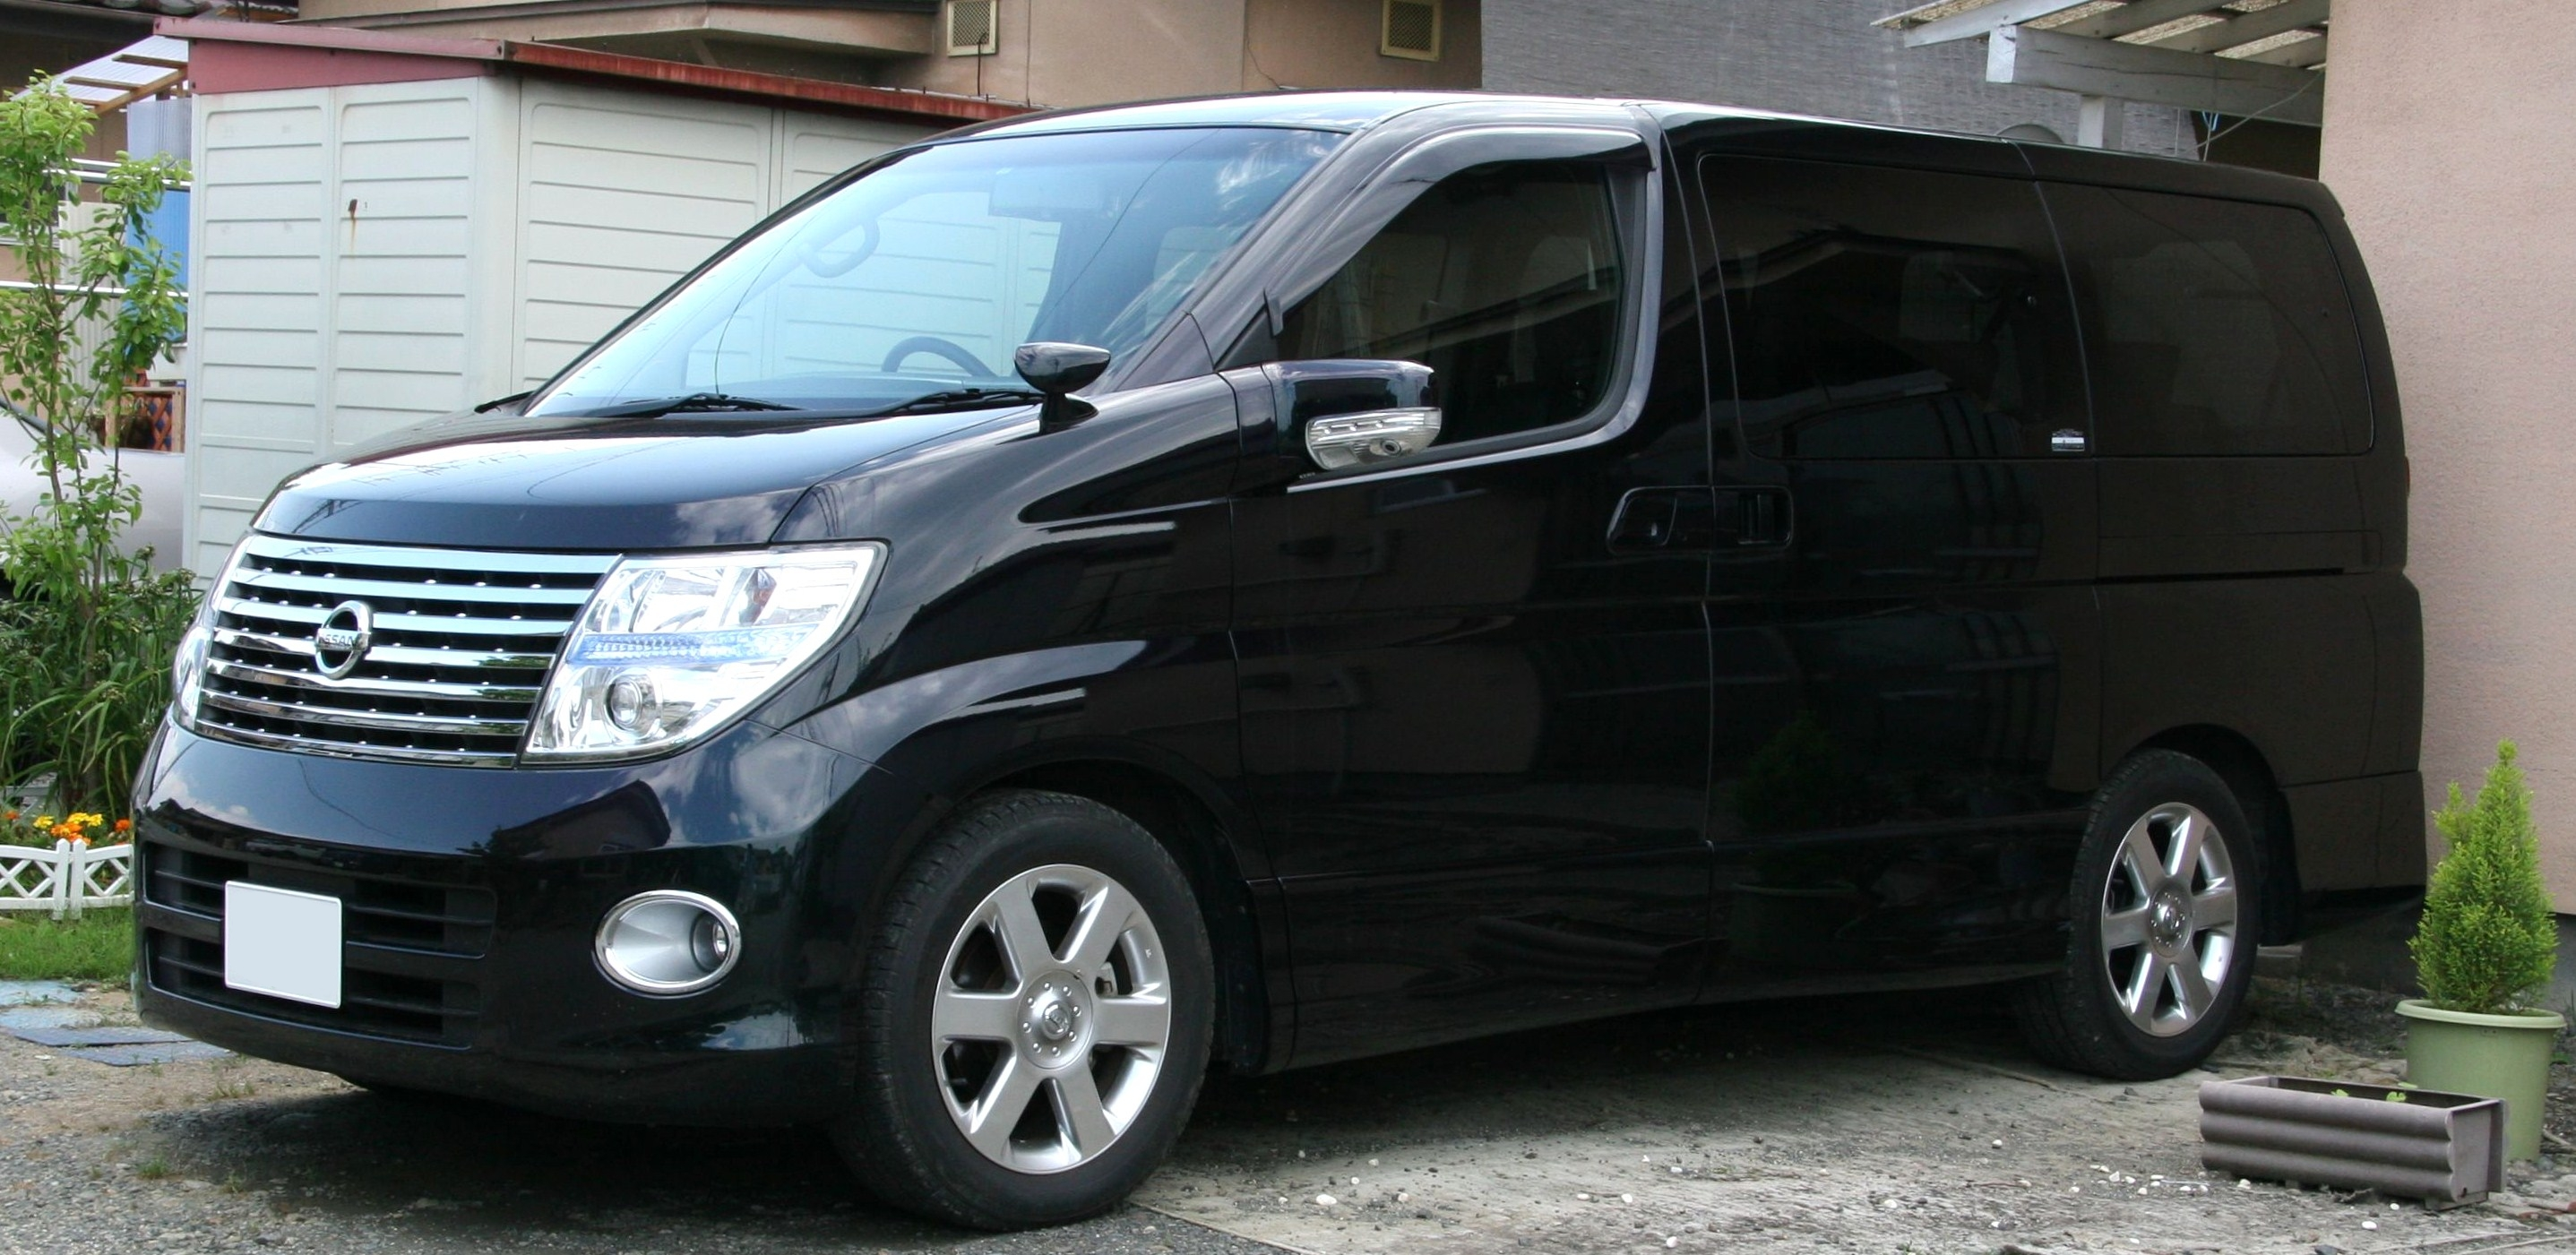 Nissan Elgrand   pictures, information and specs - Auto-Database.com